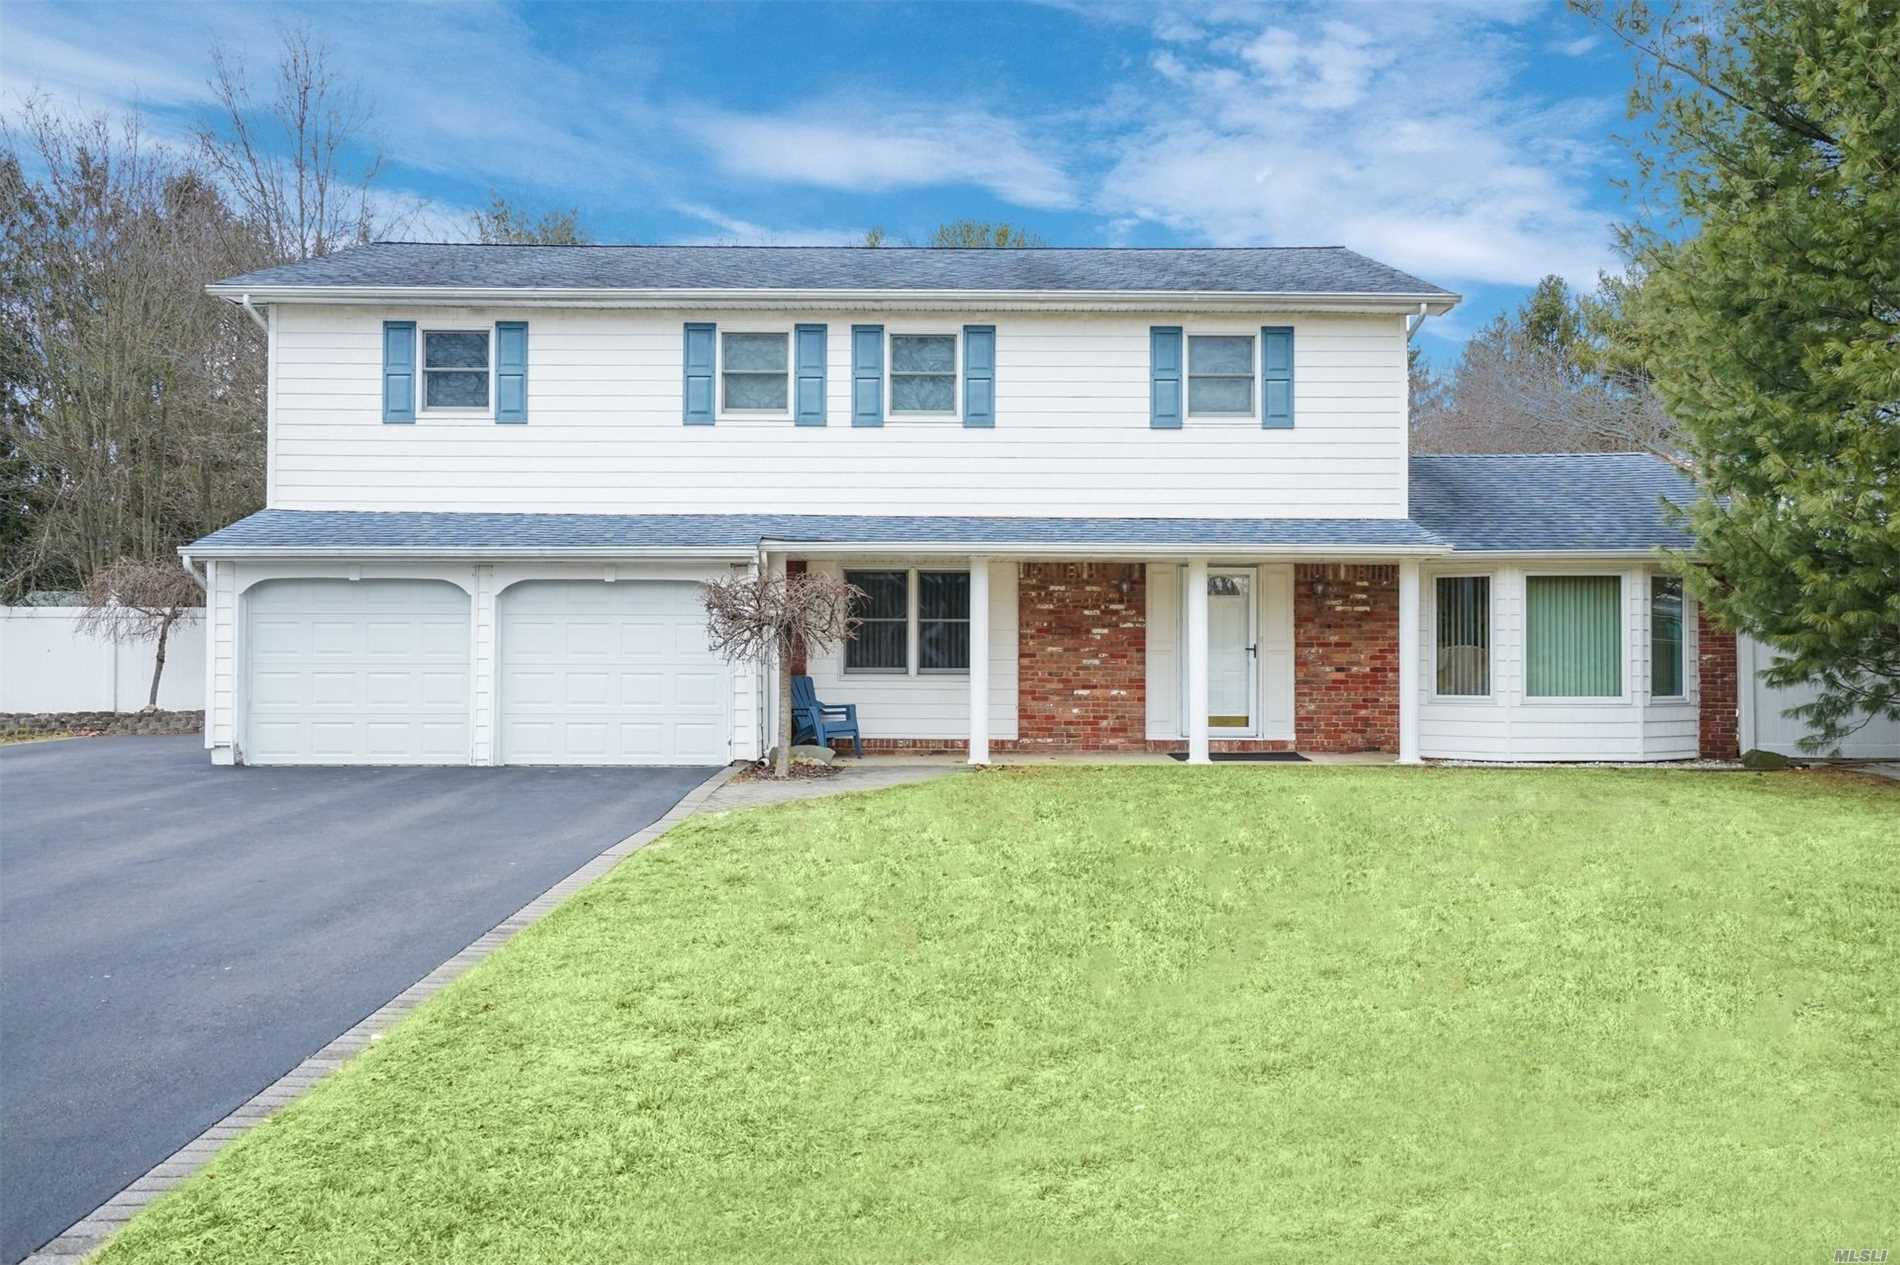 Sought After Coloinal Home On A Desirable Interior Street In The Famed Commack Schools W/ An East Northport Address. This Home Offers Many Possibilities For Today's Buyer. Expanded Driveway To Fit !0 Cars/Updated Anderson Windows/ Roof/ Siding/Cesspool/Heating System. Eat In Kitchen W/ Oak Cabinets Over Looking Shy 1/2 Acre Fenced Yard W/ Sliding Glass Drs. Ceramic Tile/Hardwood Flrs/ Updated Master Bath/Wood Burning Fireplace/Recessed Lighting/ First Floor Laundry. All 5 Br's On Same Flr.